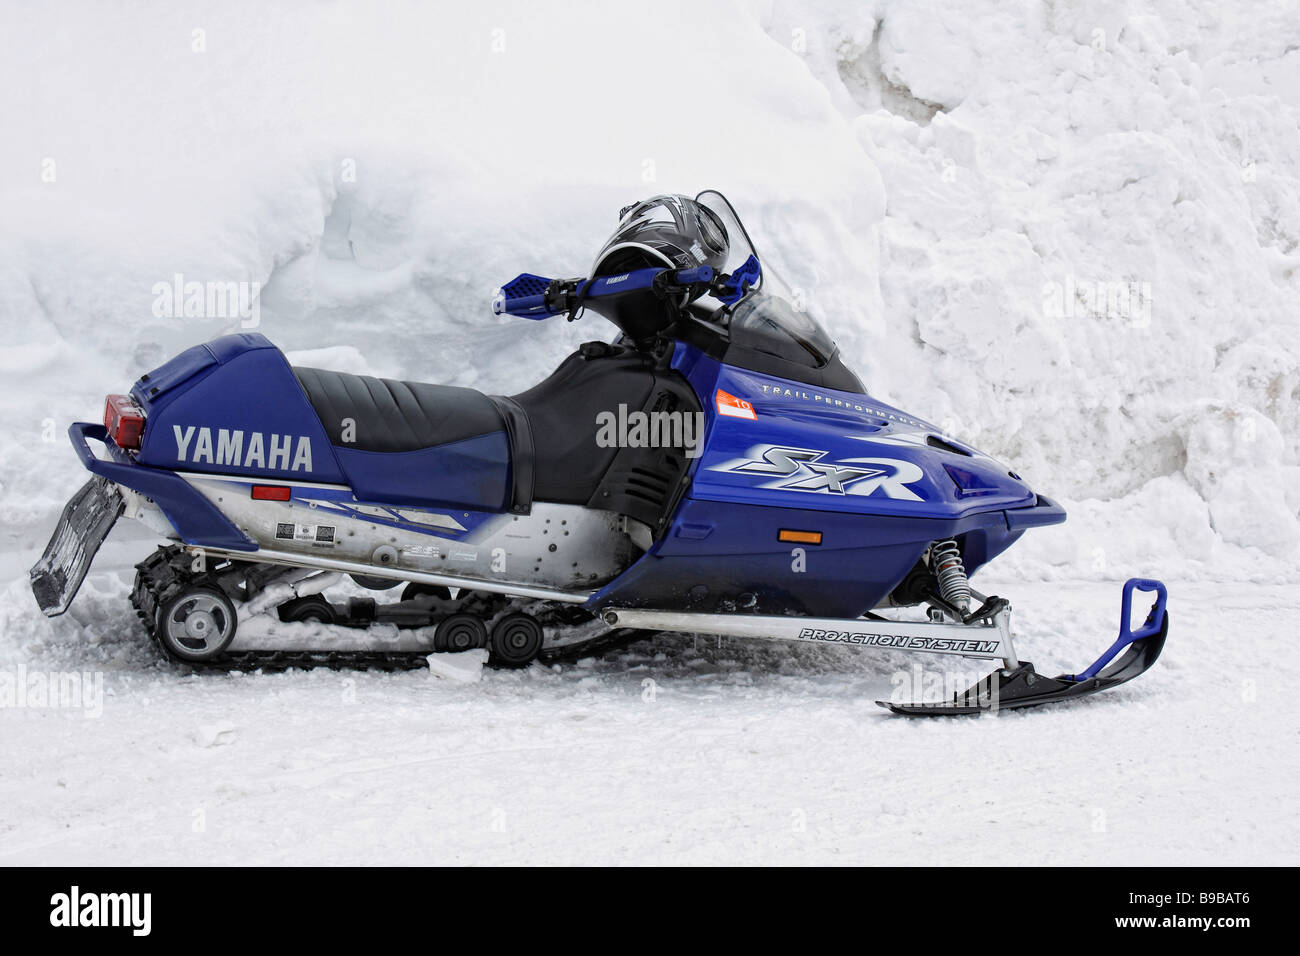 Blue snowmobile on the street in USA - Stock Image